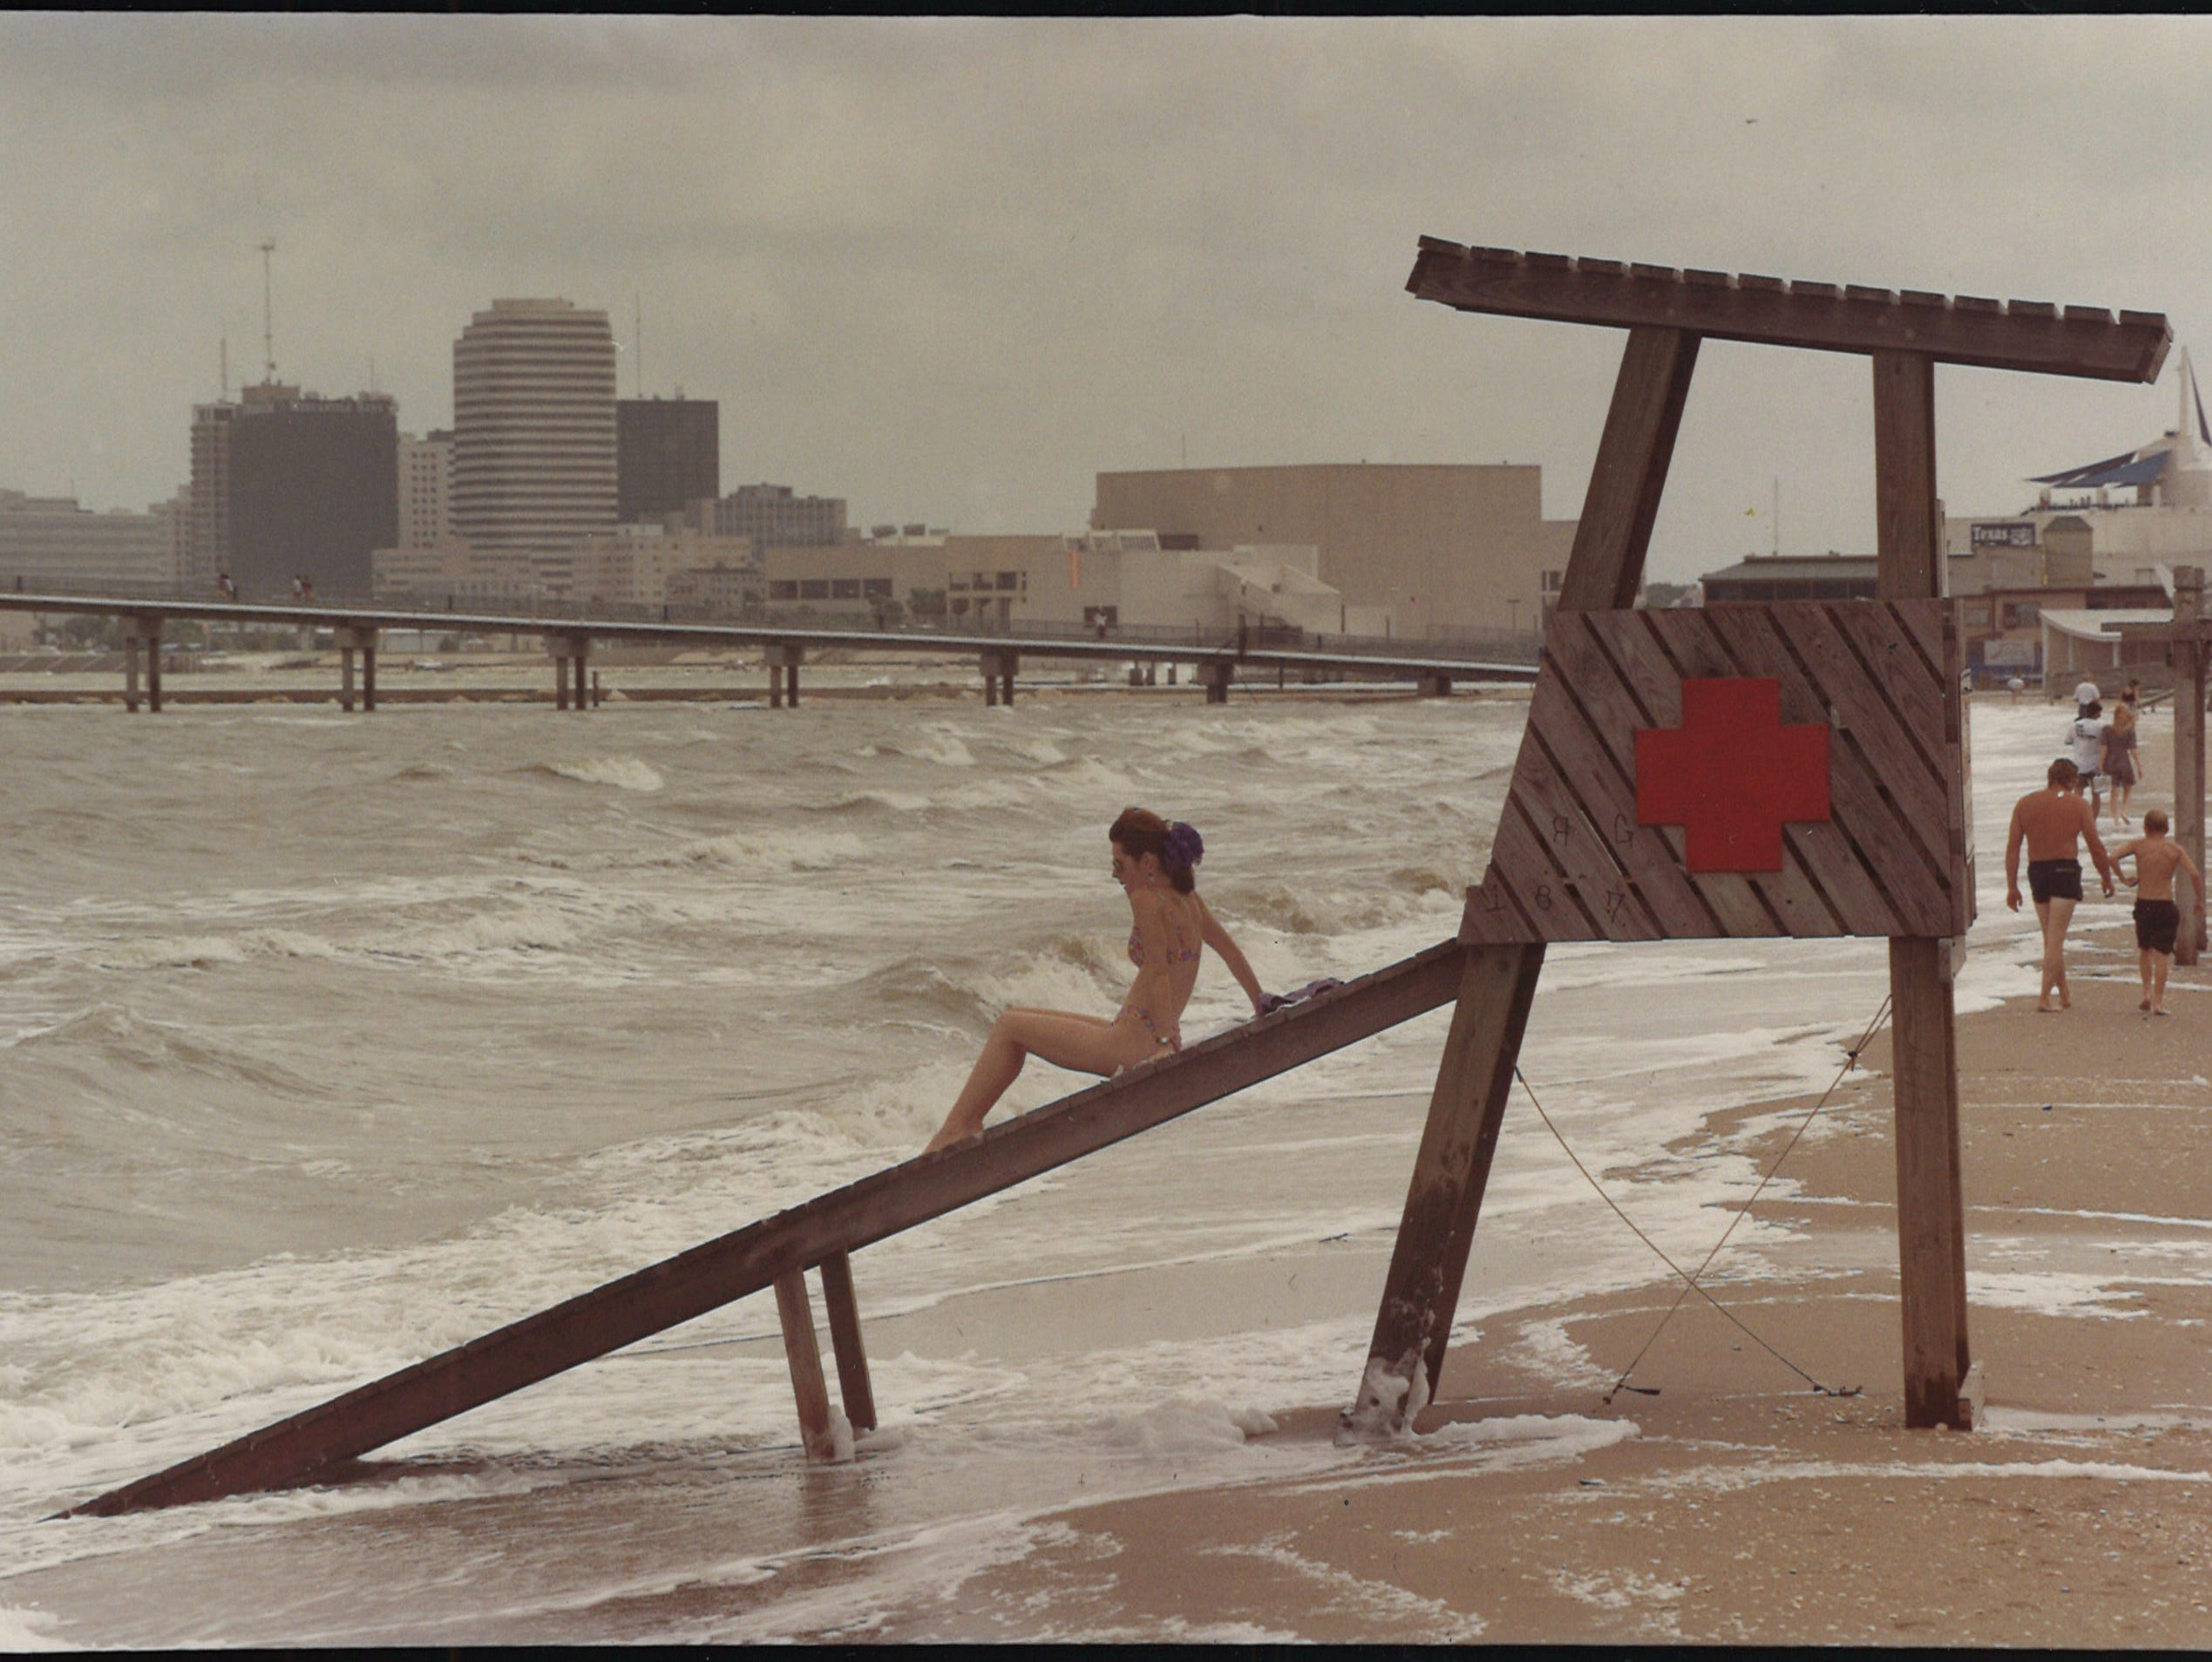 Lanita Edwards of San Antonio sits on a lifeguard stand as the tide comes up on Corpus Christi's North Beach on April 29, 1994.